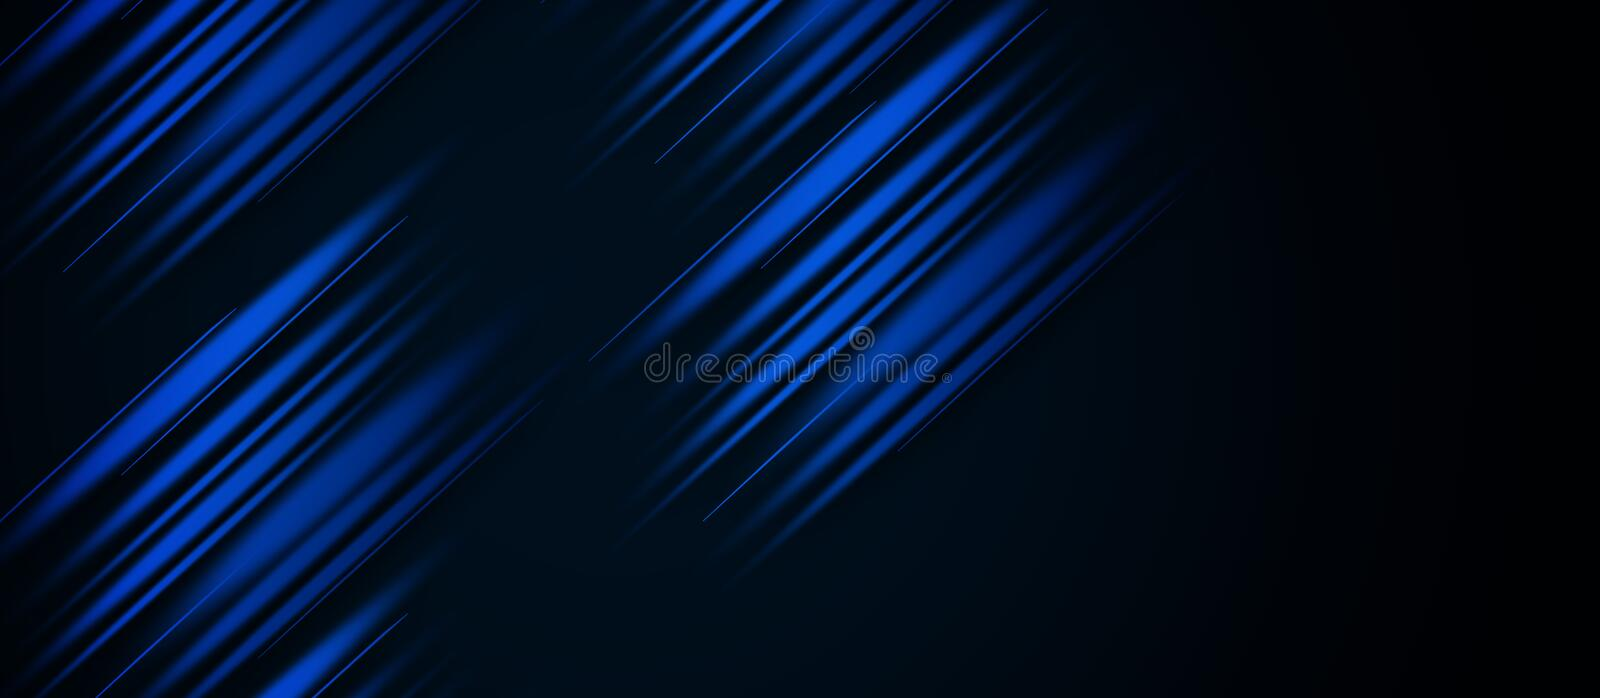 Acceleration speed motion on night road. Light and stripes moving fast over dark background. Abstract blue Illustration. vector illustration